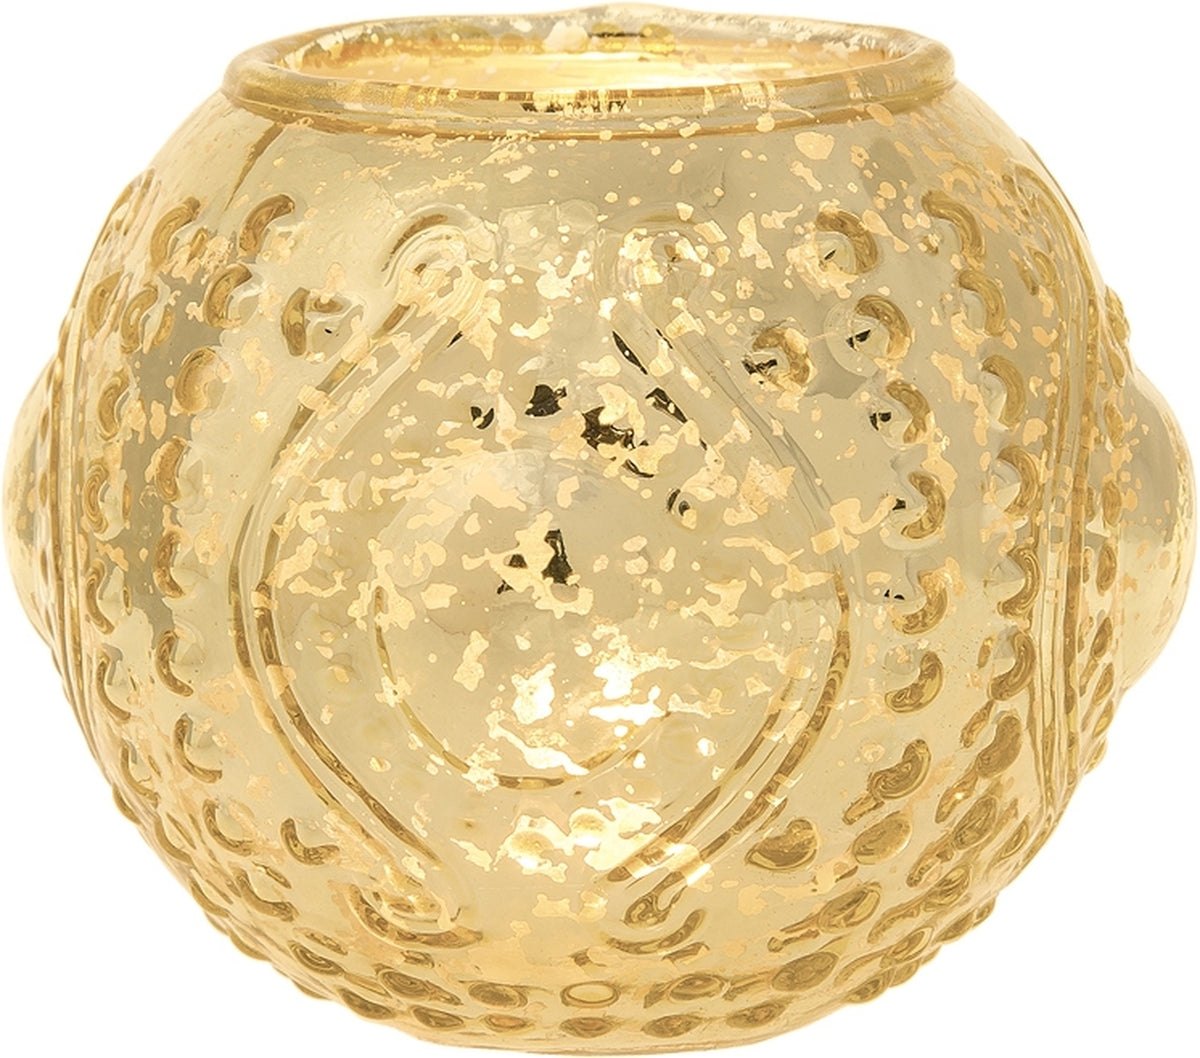 Vintage Mercury Glass Candle Holder (5.75-Inches, Large Josephine Design, Gold) - Use with Tea lights - for Home Decor, Parties and Wedding Decorations - PaperLanternStore.com - Paper Lanterns, Decor, Party Lights & More